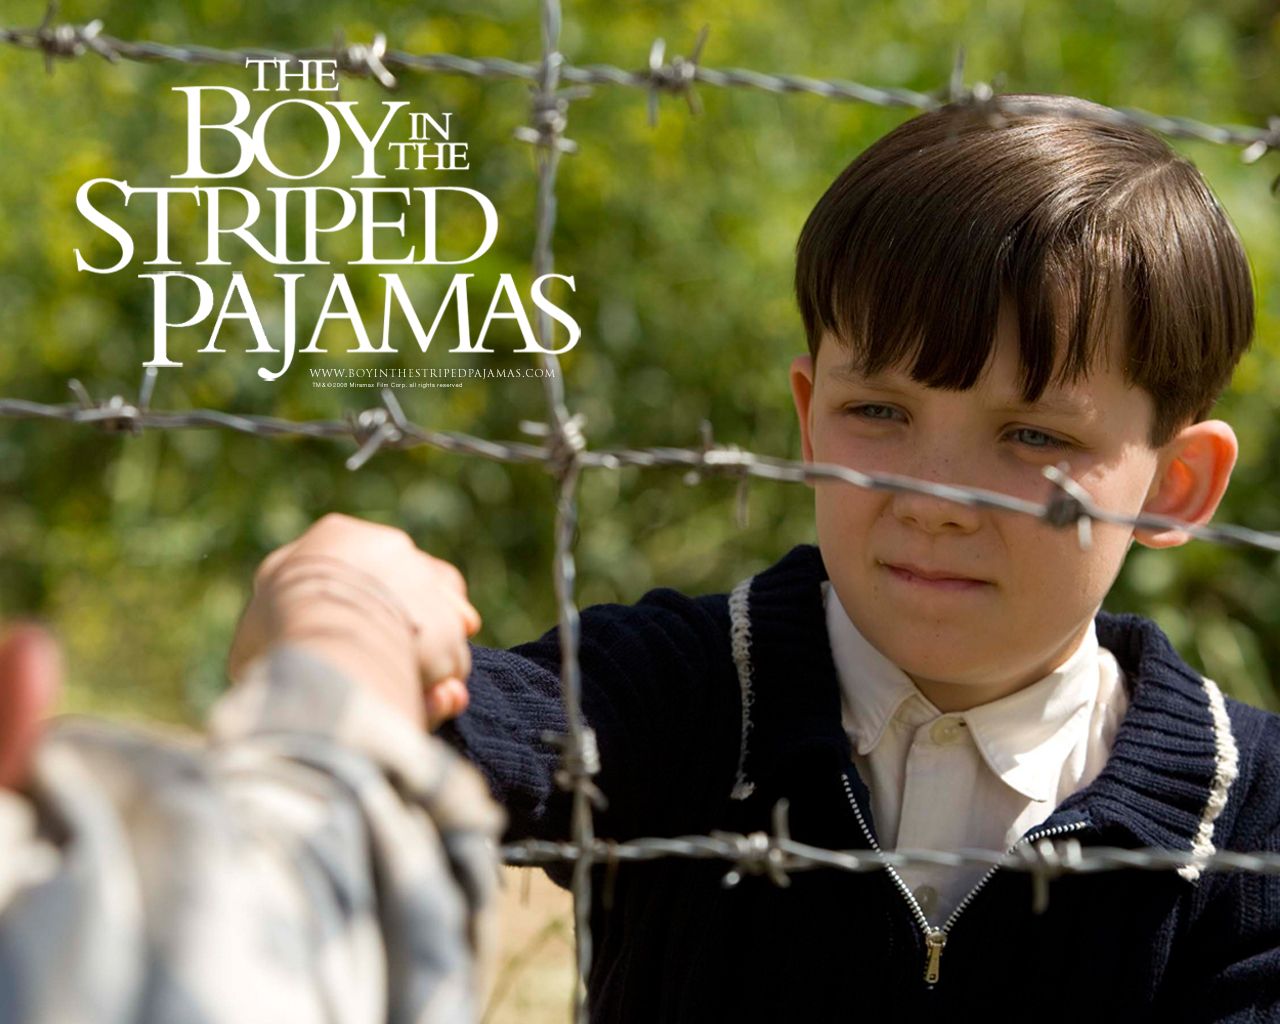 The boy in the striped pajamas: a inocência infantil se mescla com a dura realidade do nazismo.